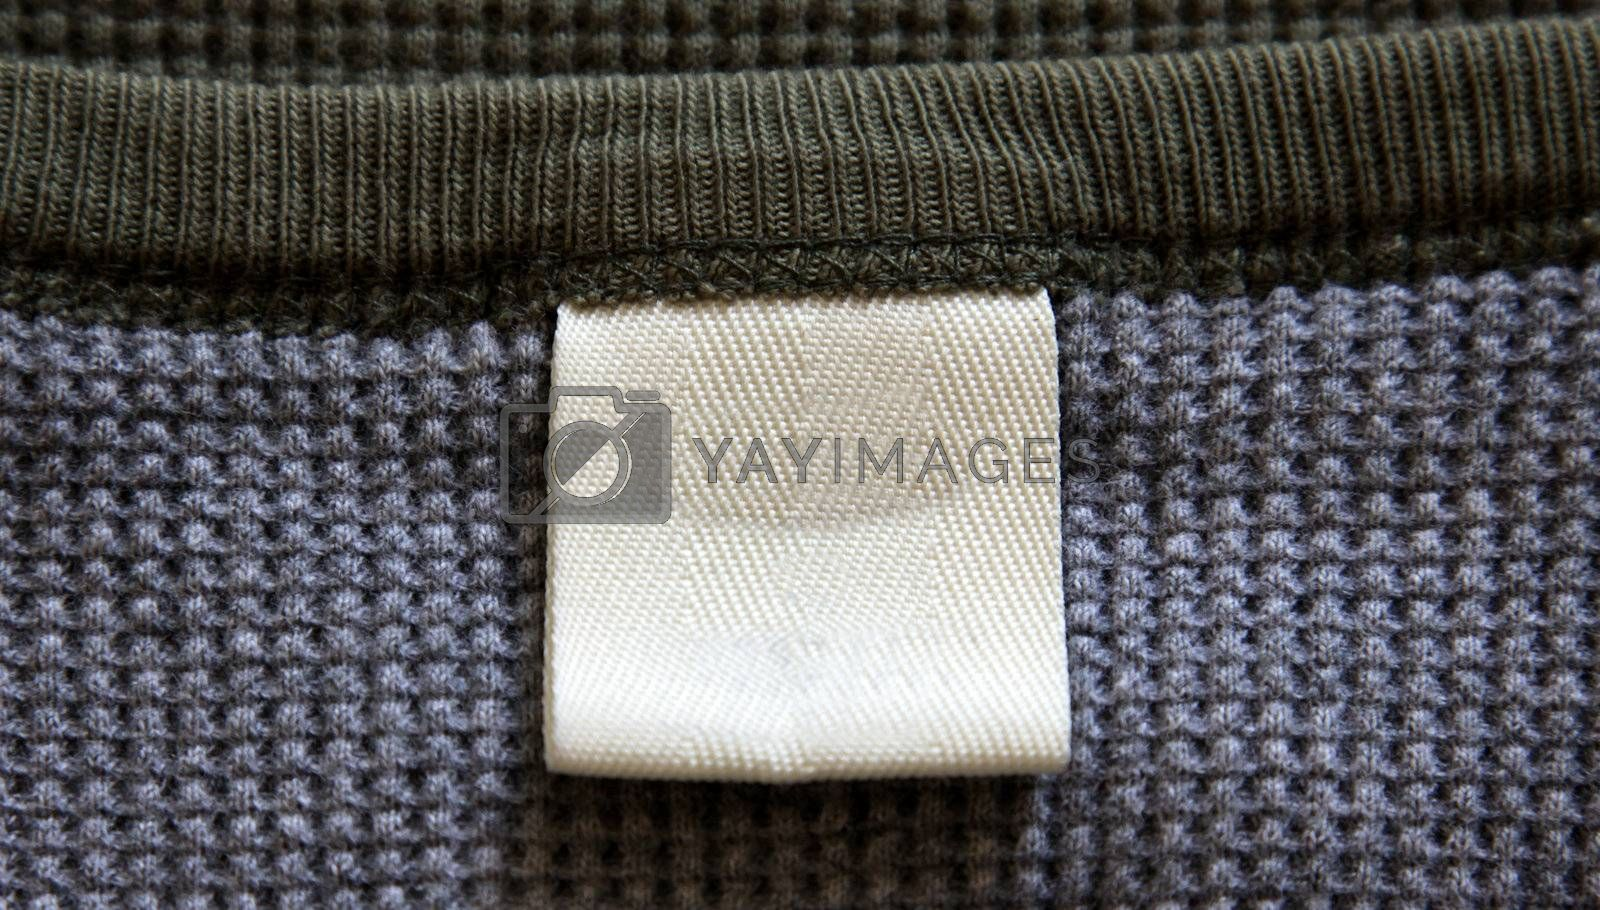 Shirt Label  by ca2hill